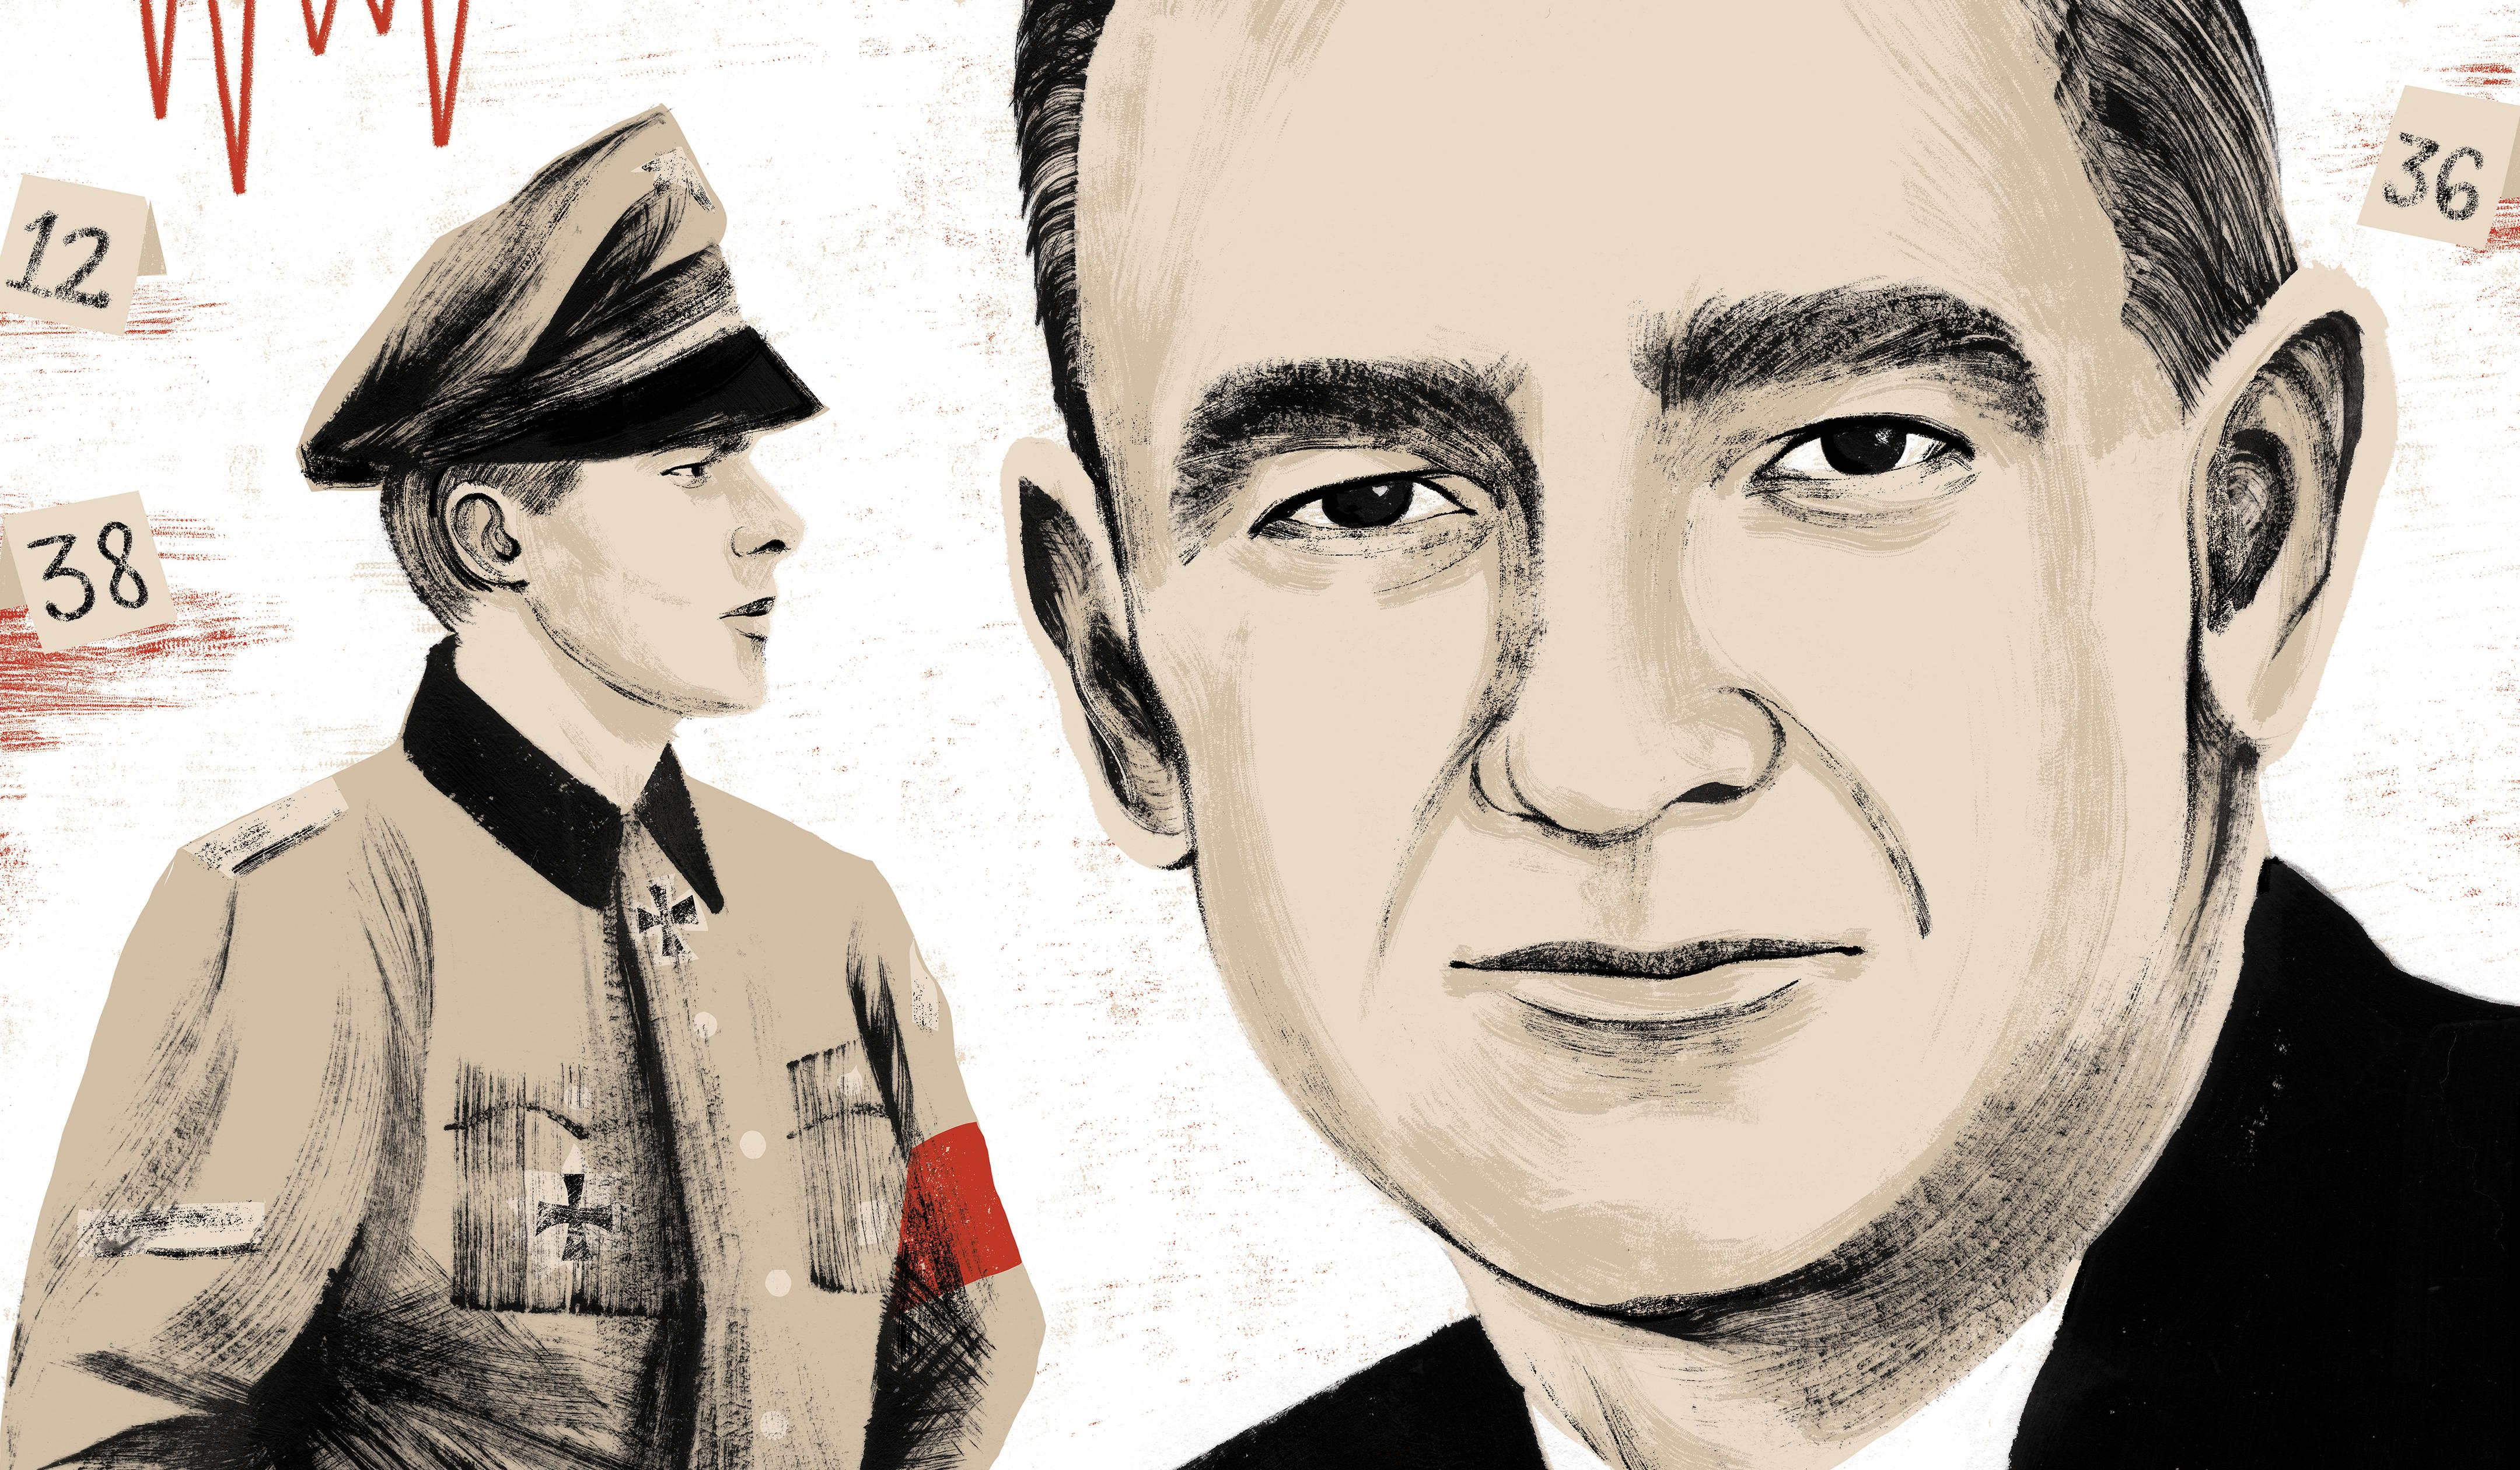 Before Senator Joe McCarthy became infamous for his grandstanding against alleged Communists, he came to the defense of former German soldiers convicted during the Malmedy war crimes trial.